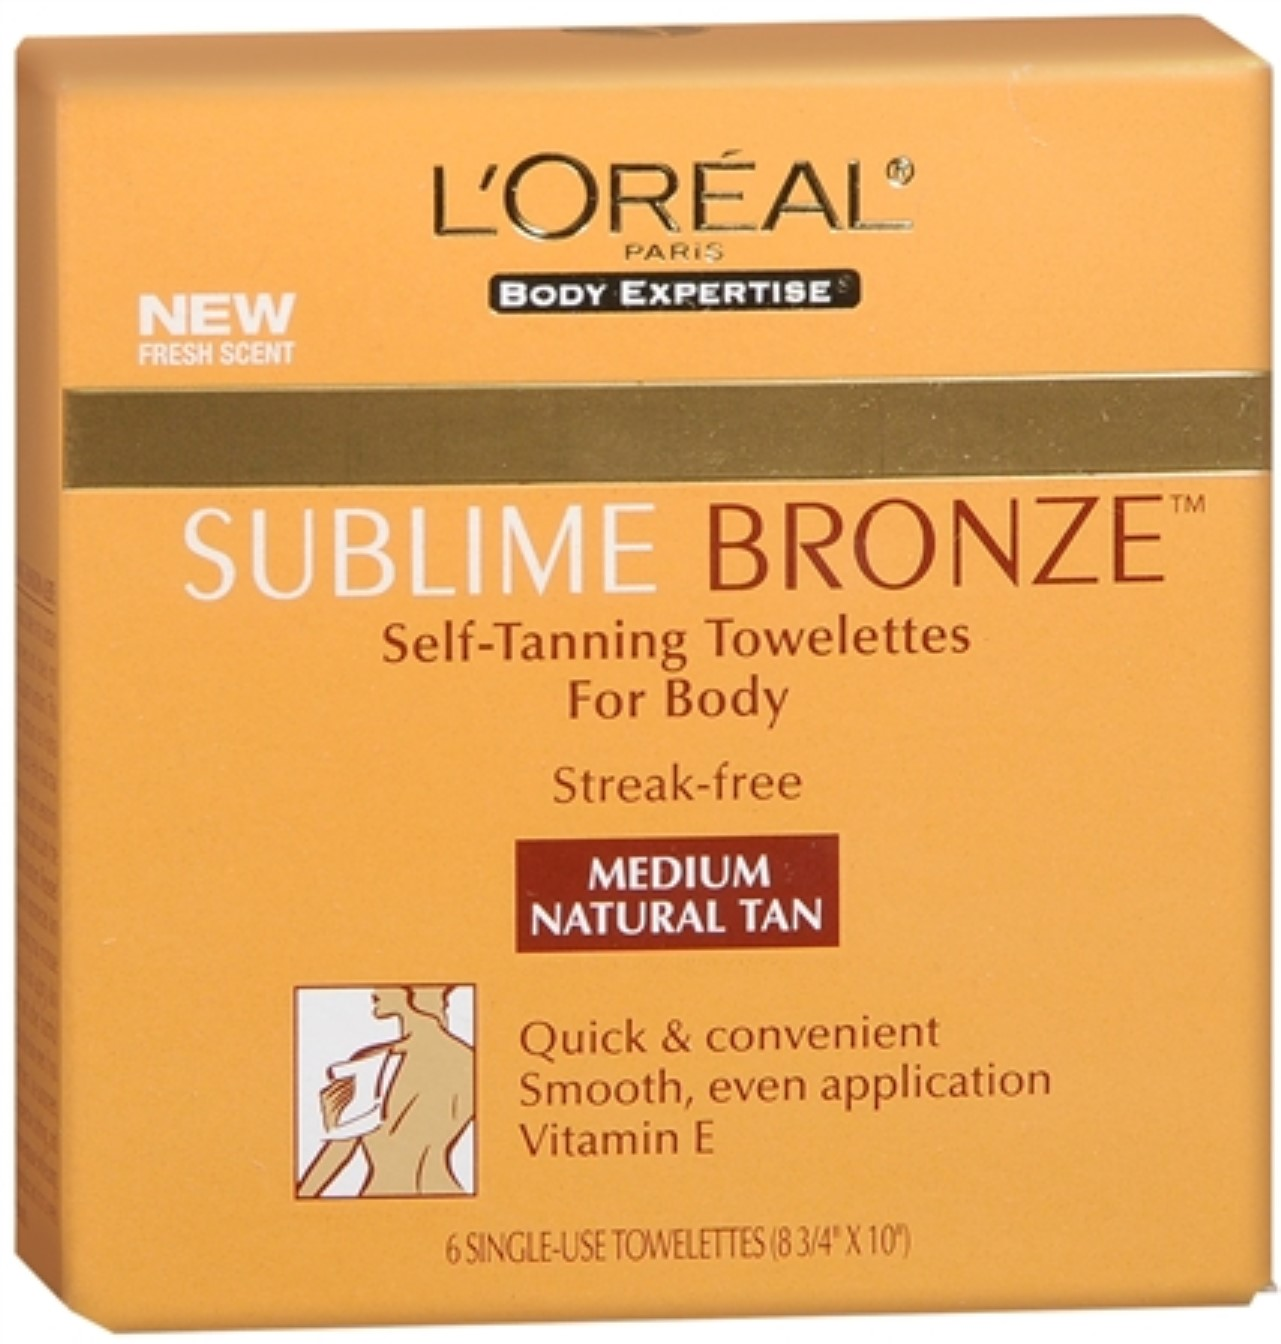 L'Oreal SUBLIME BRONZE Self-Tanning Towelettes For Body M...